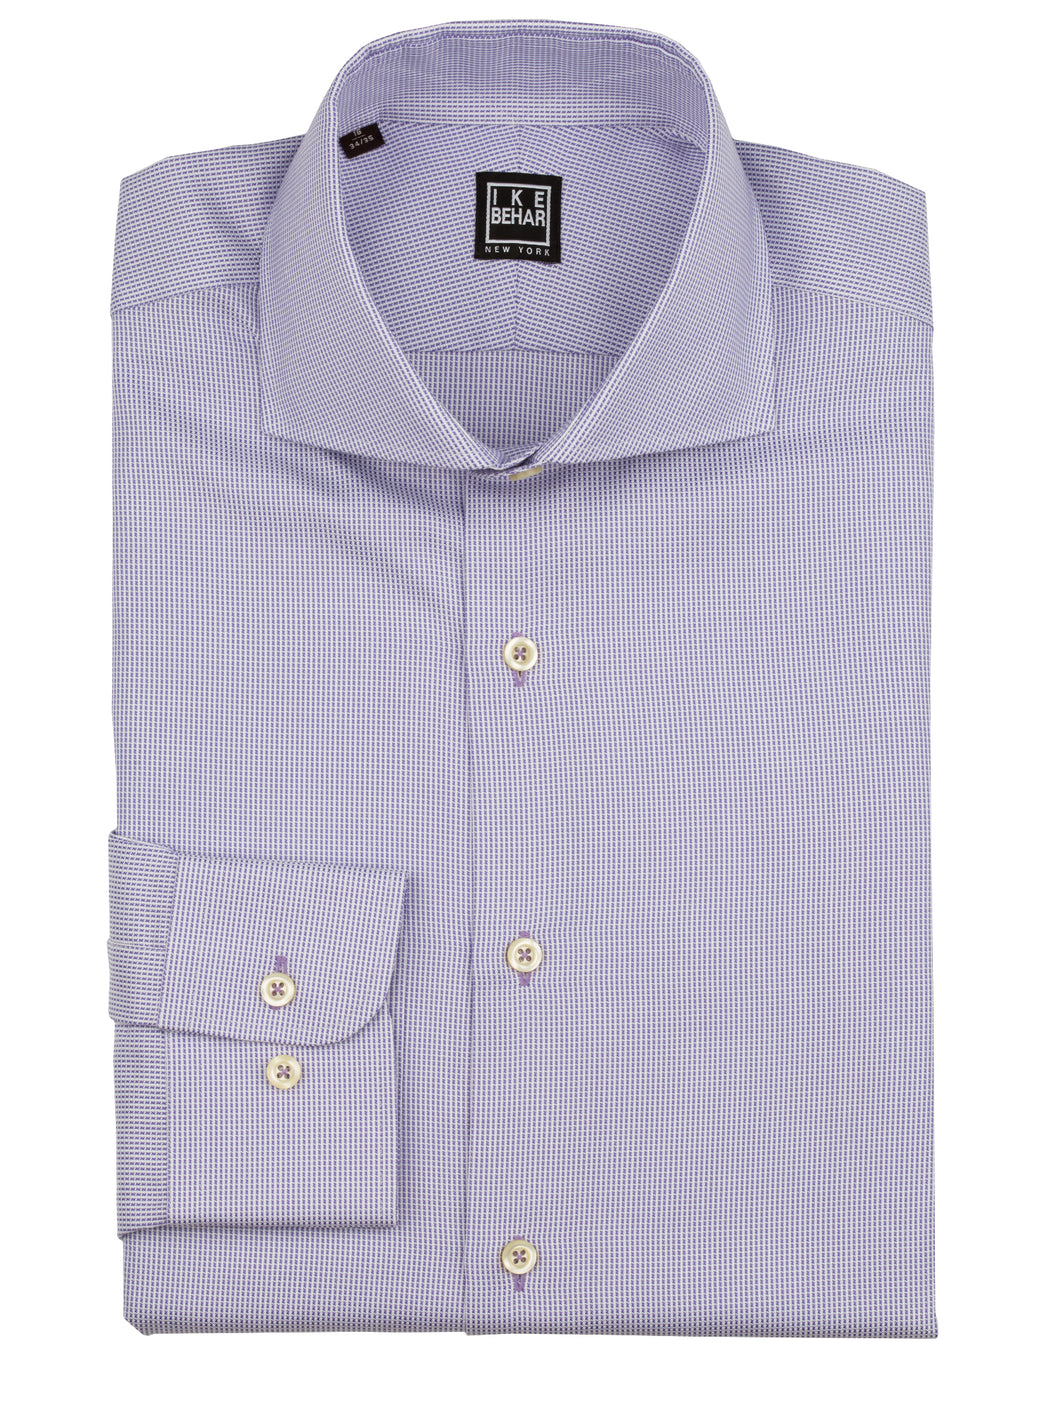 Lilac Panama Texture Weave Dress Shirt